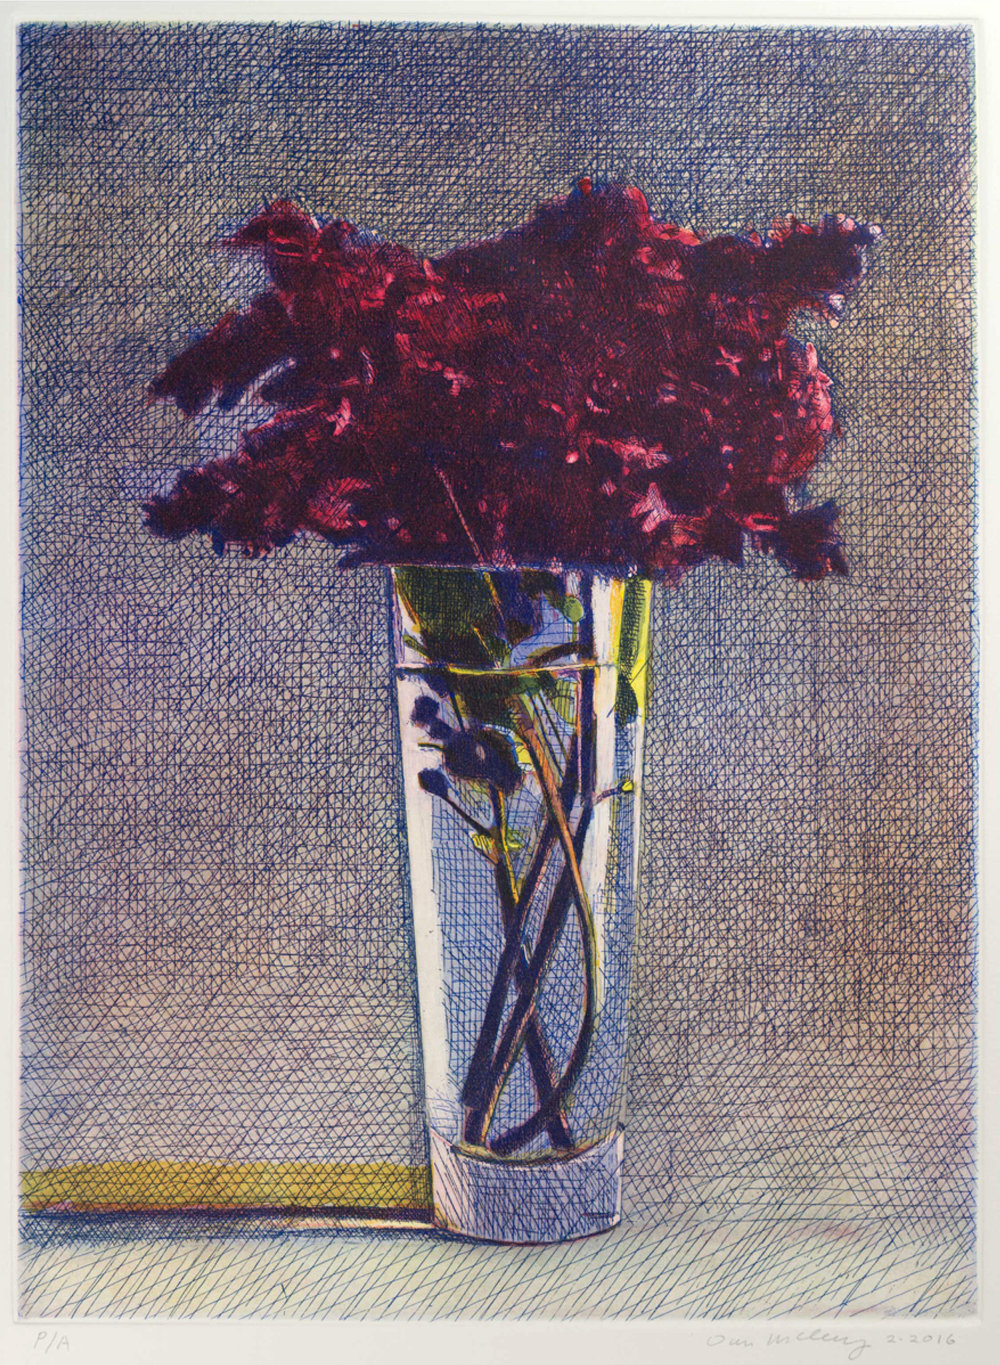 Lilacs - $1000, Color Etching on Paper, 11.5'' x 15.5'' UNFRAMED. Edition of 25. 1 available.